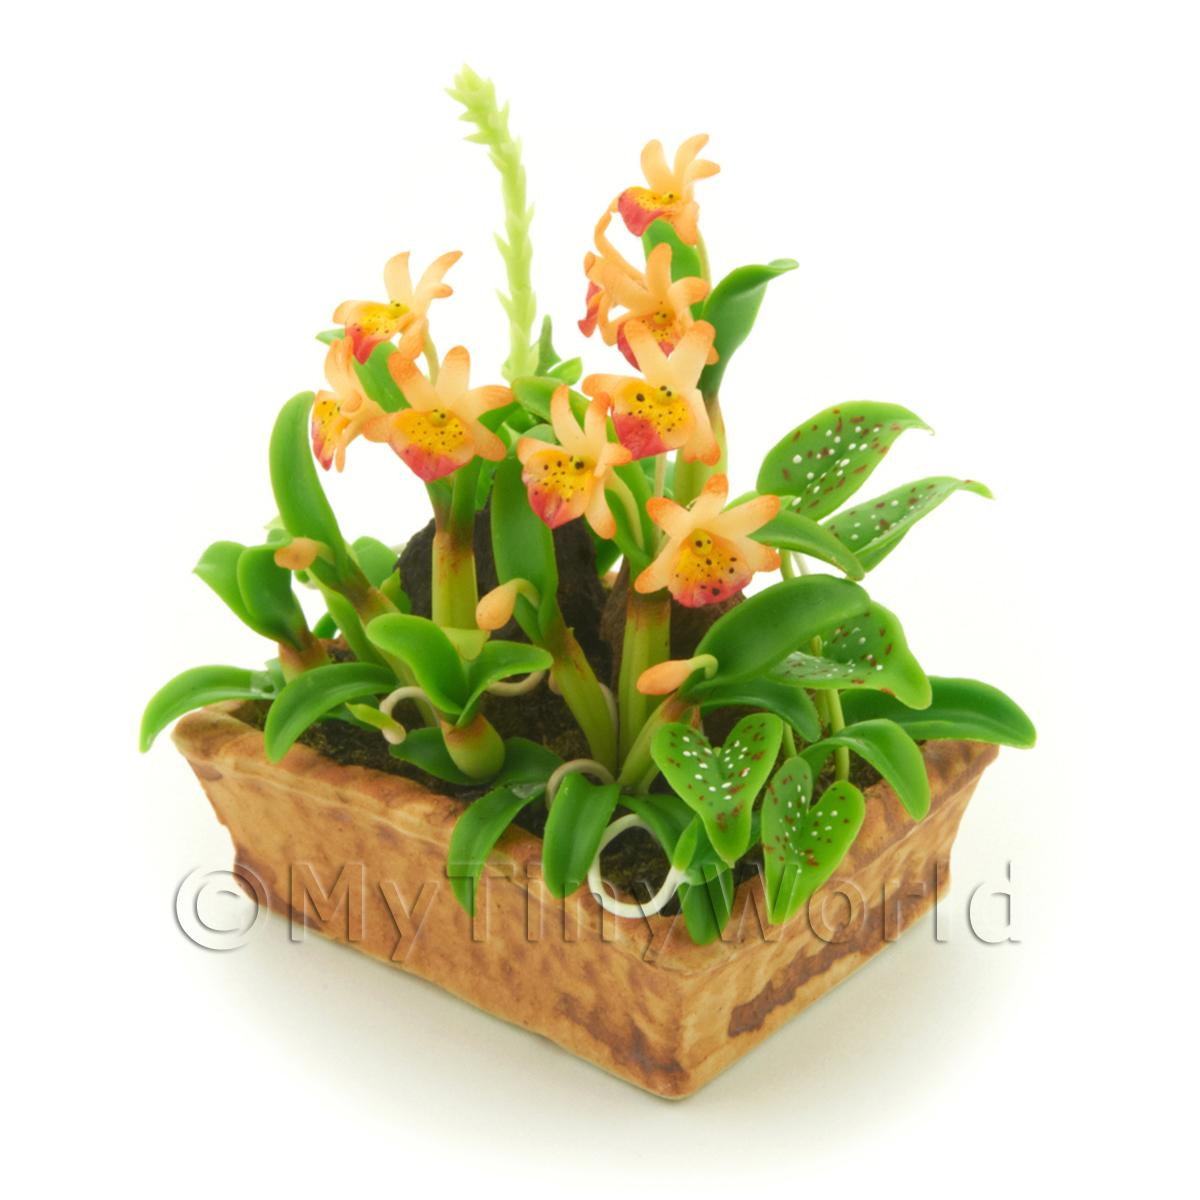 Dolls House Miniature Peach Demdrobium Orchid Display